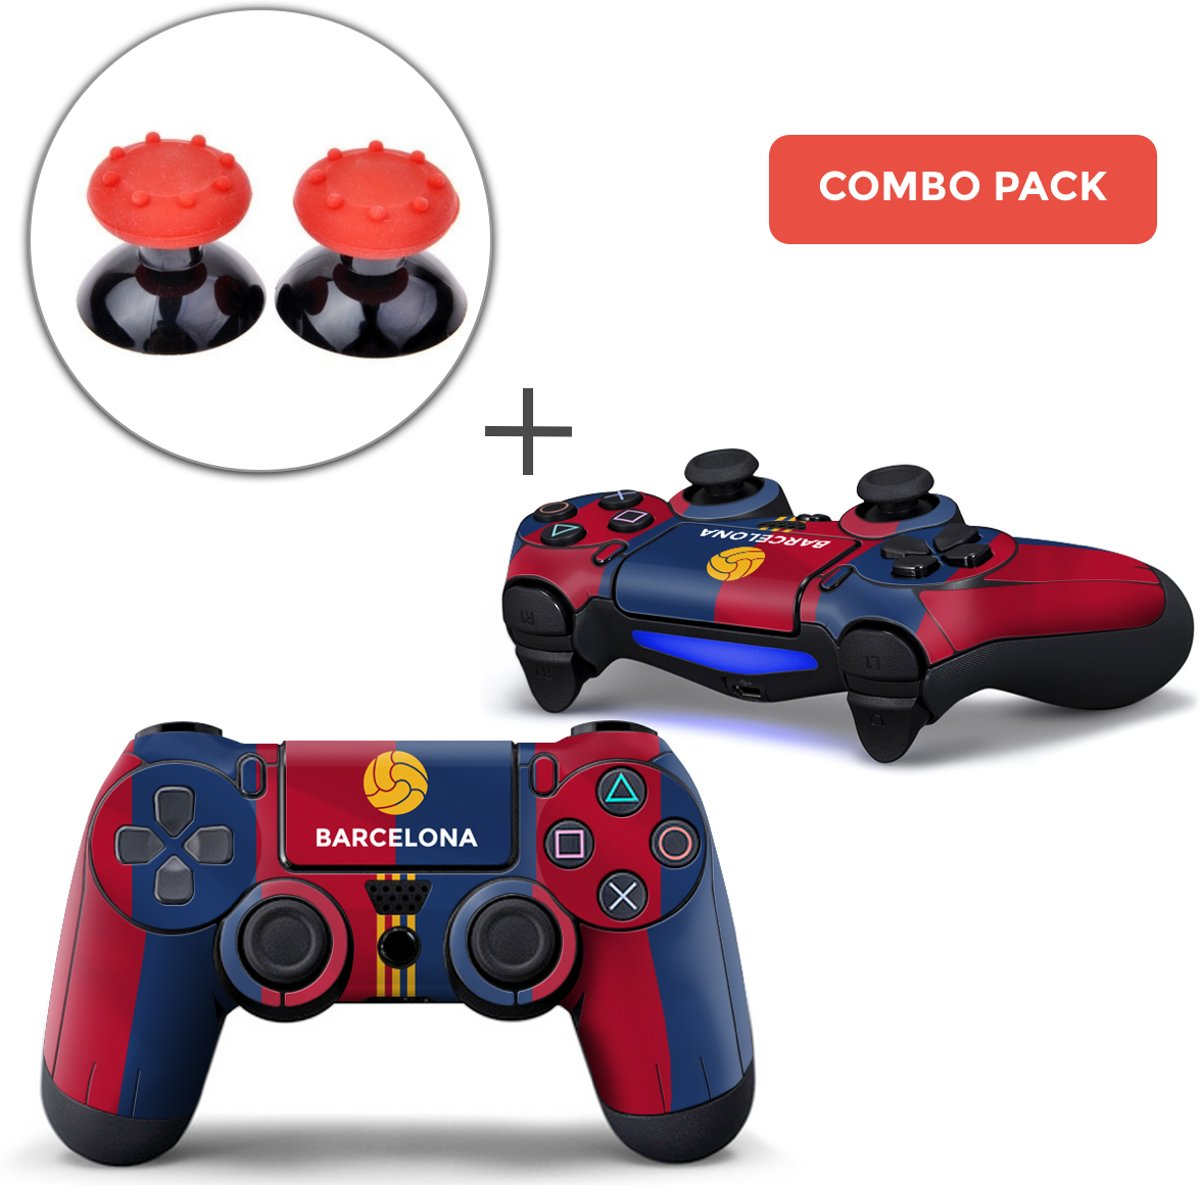 Barcelona Combo Pack - PS4 Controller Skins PlayStation Stickers + Thumb Grips Rood